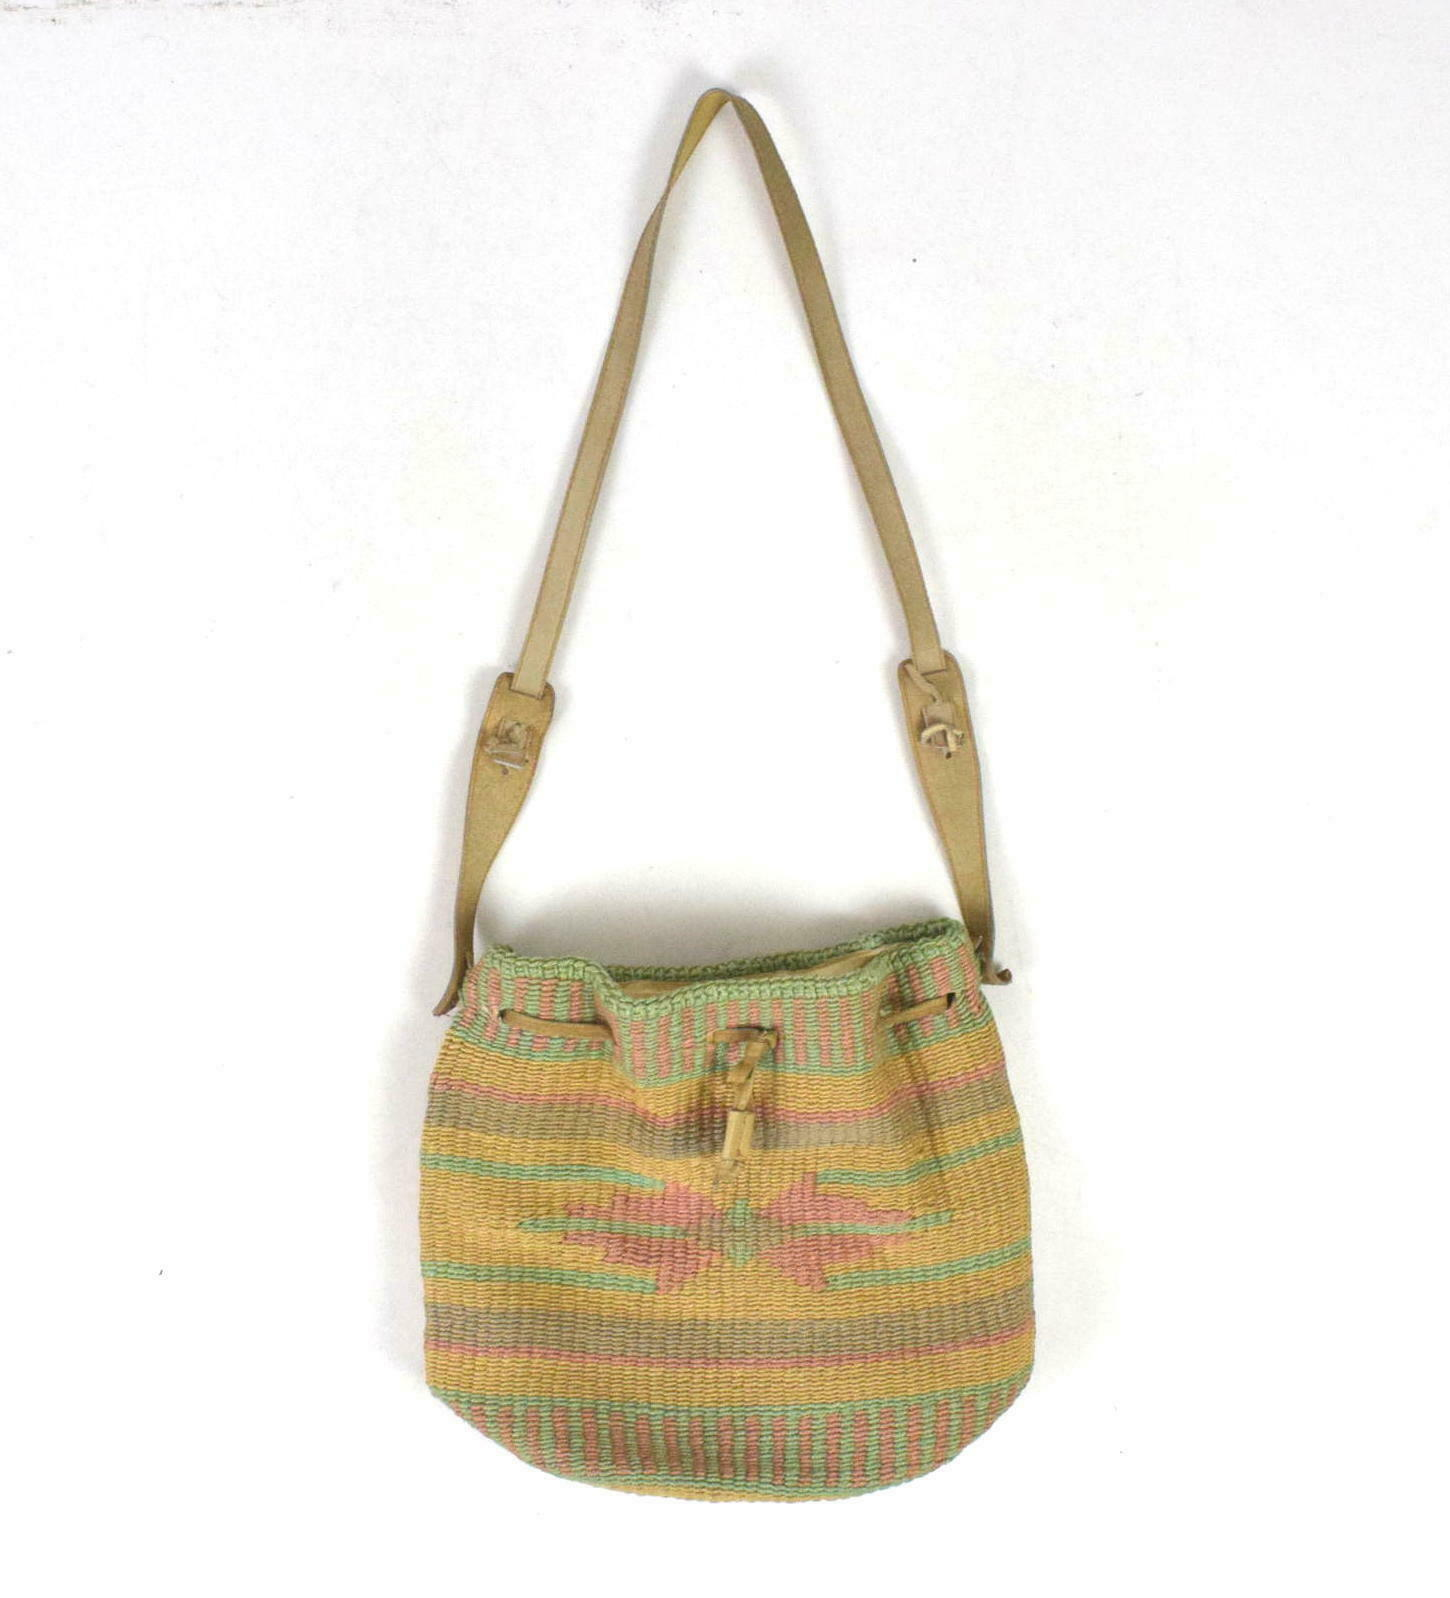 Primary image for Vtg Pastel Straw Leather Drawstring Beach Tote Bag Hippie Satchel Bucket Purse